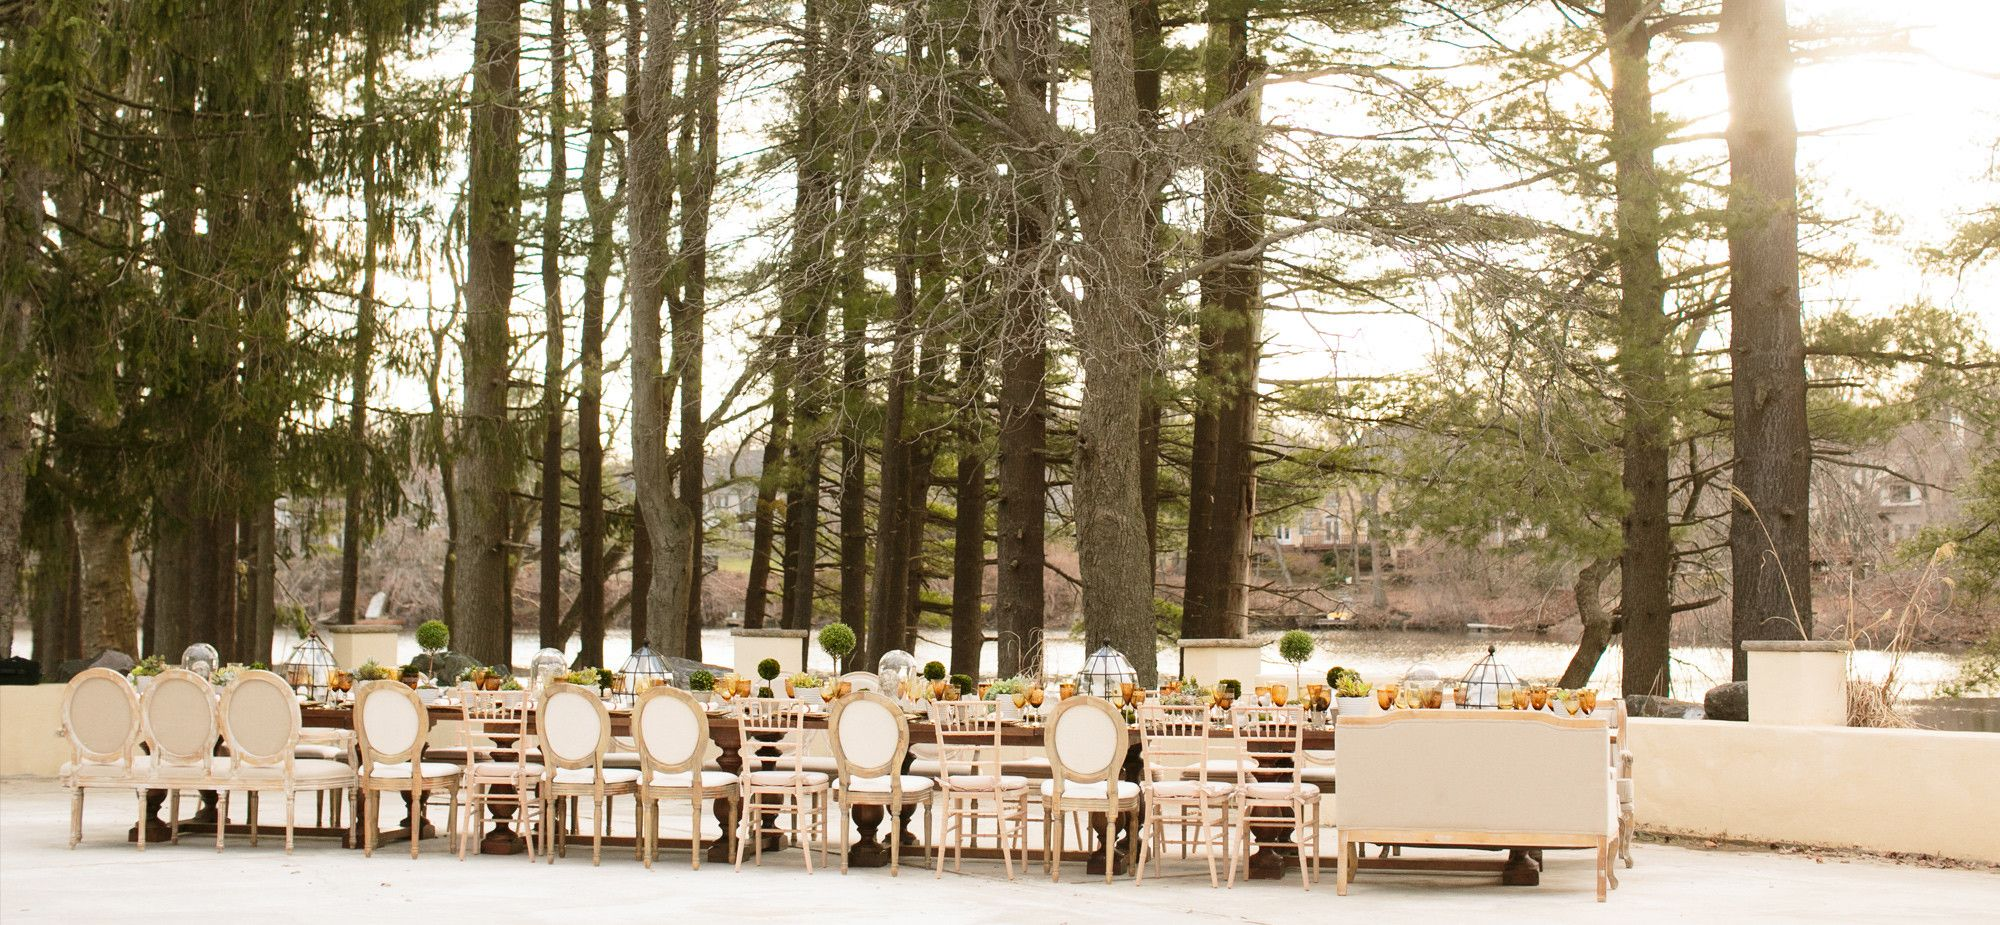 Furniture stores east brunswick nj - The Place On The Lake Wedding Venue In East Brunswick